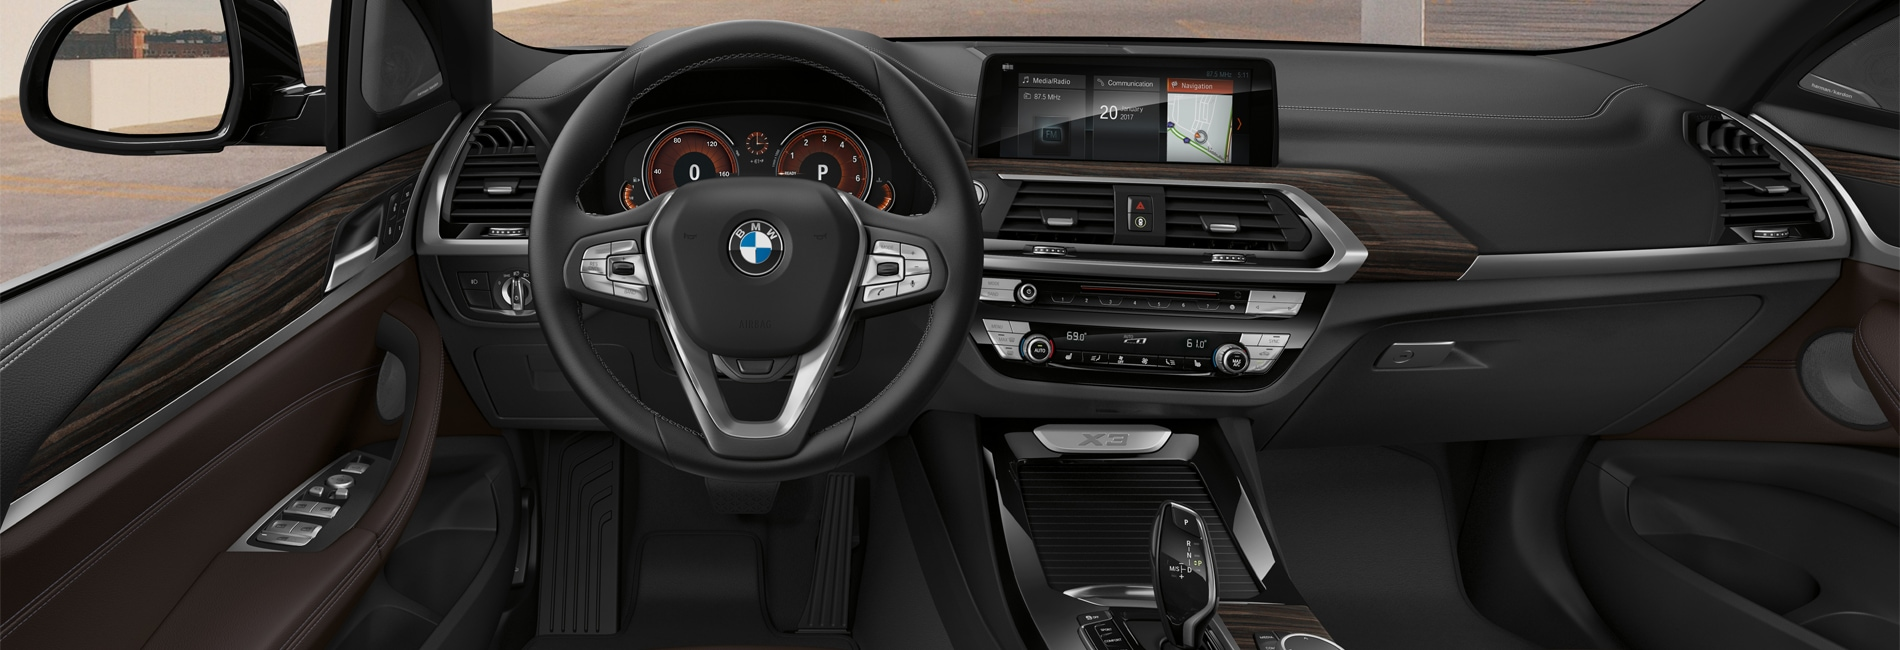 2018 BMW X3 Interior Features